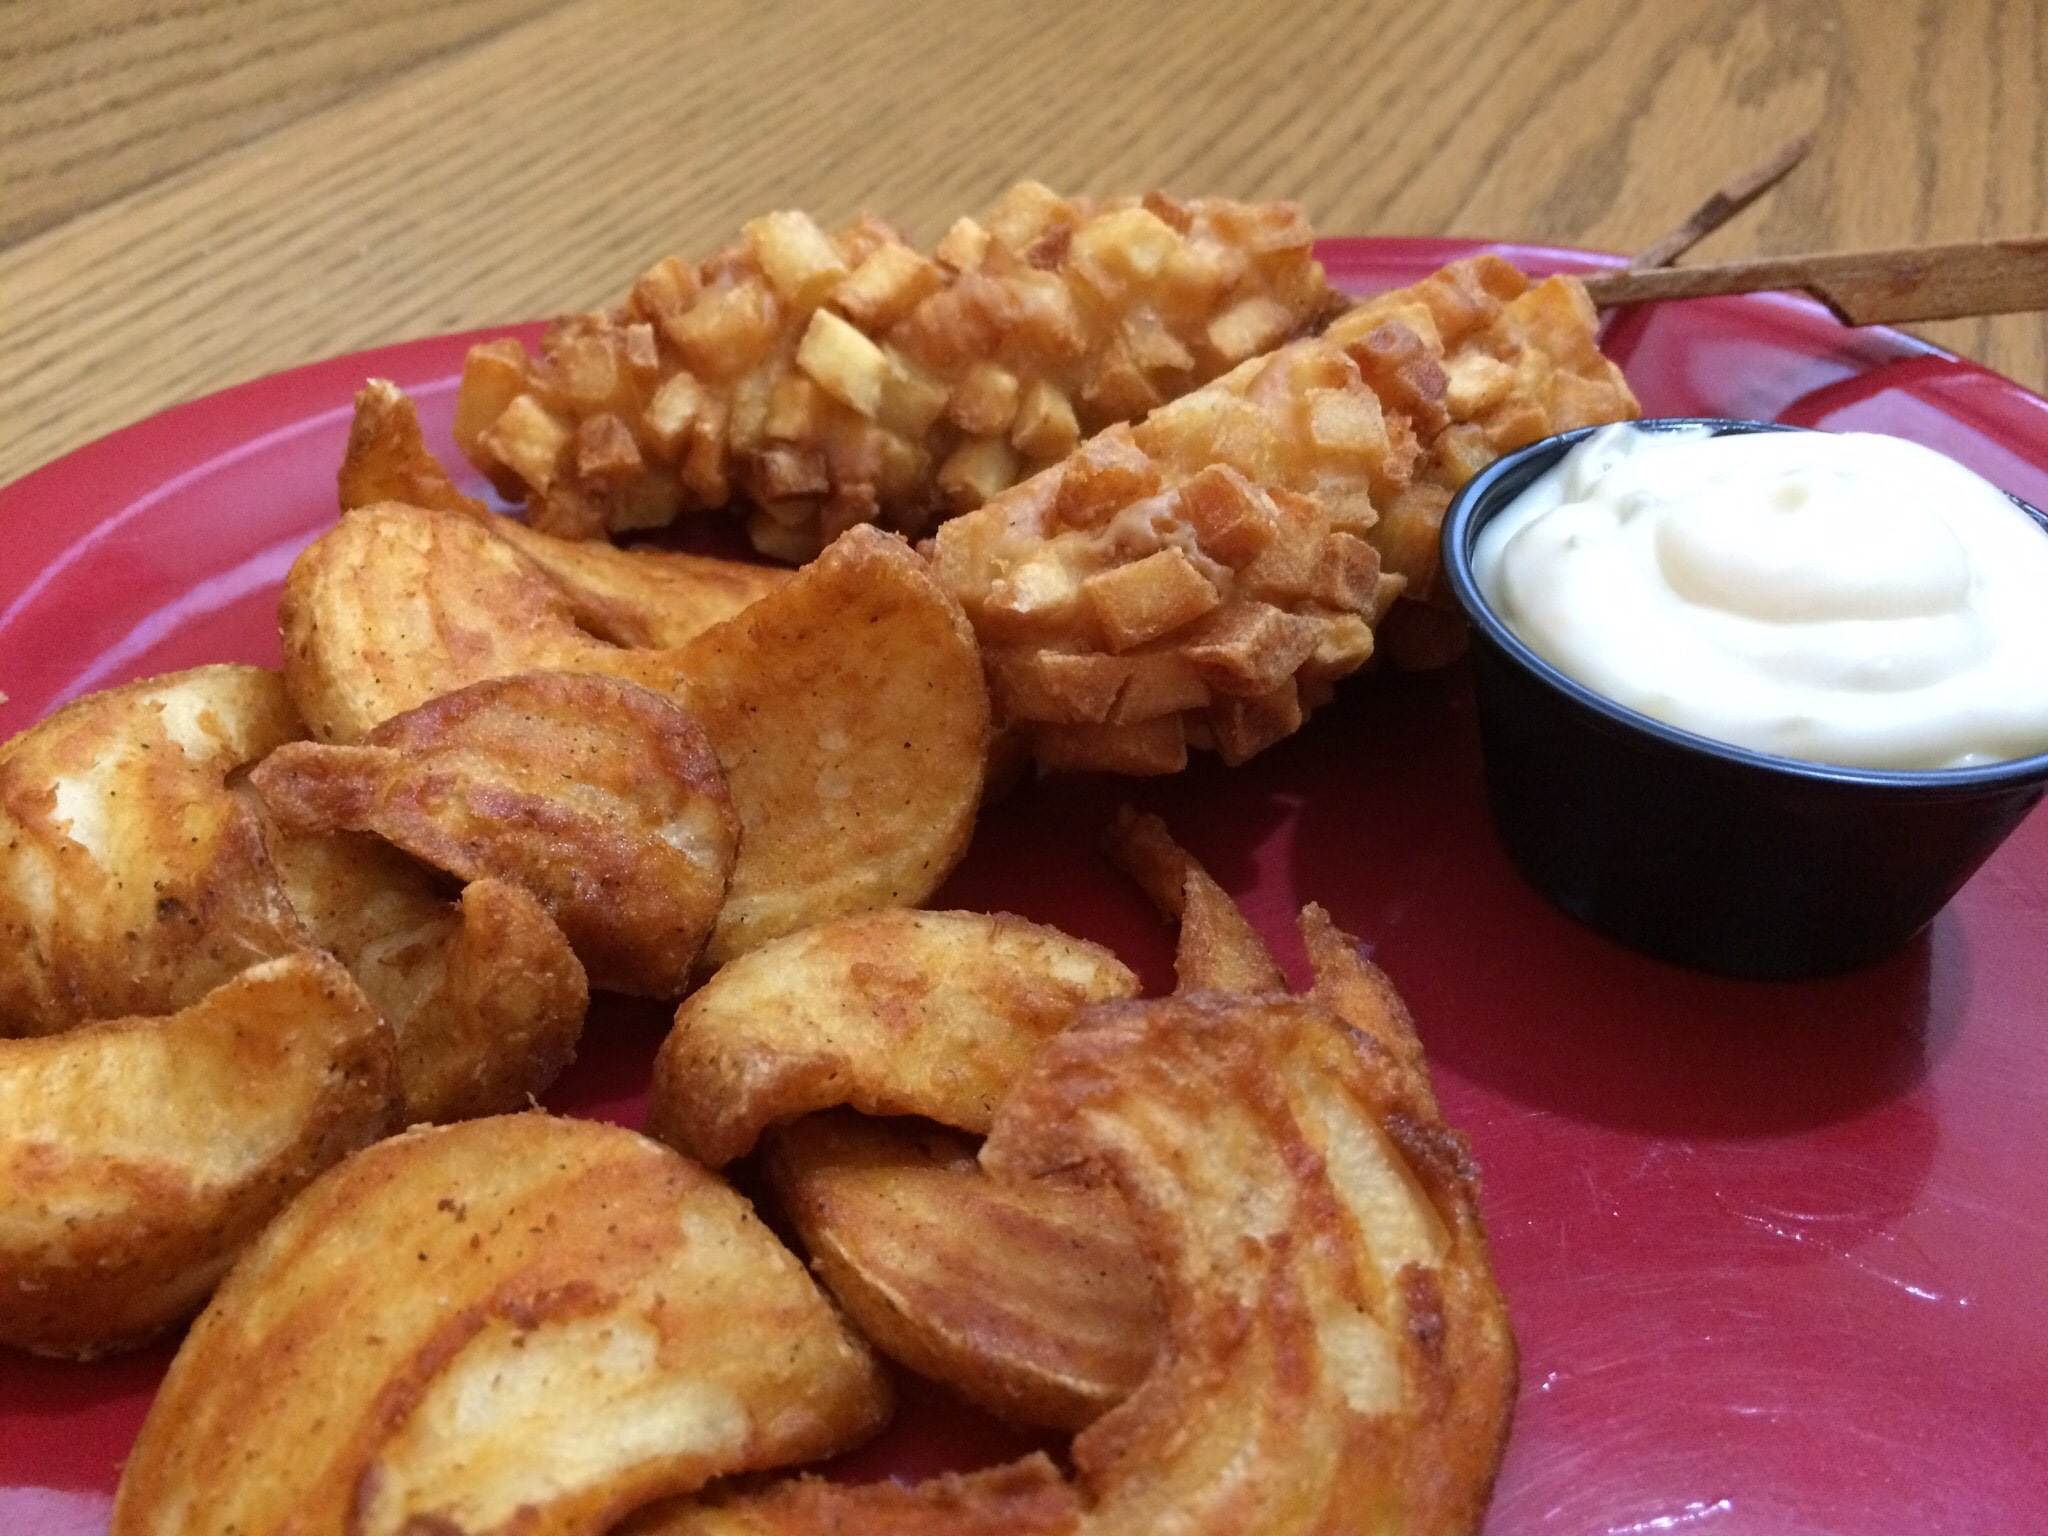 fried potatoes on a plate with a side of dipping sauce